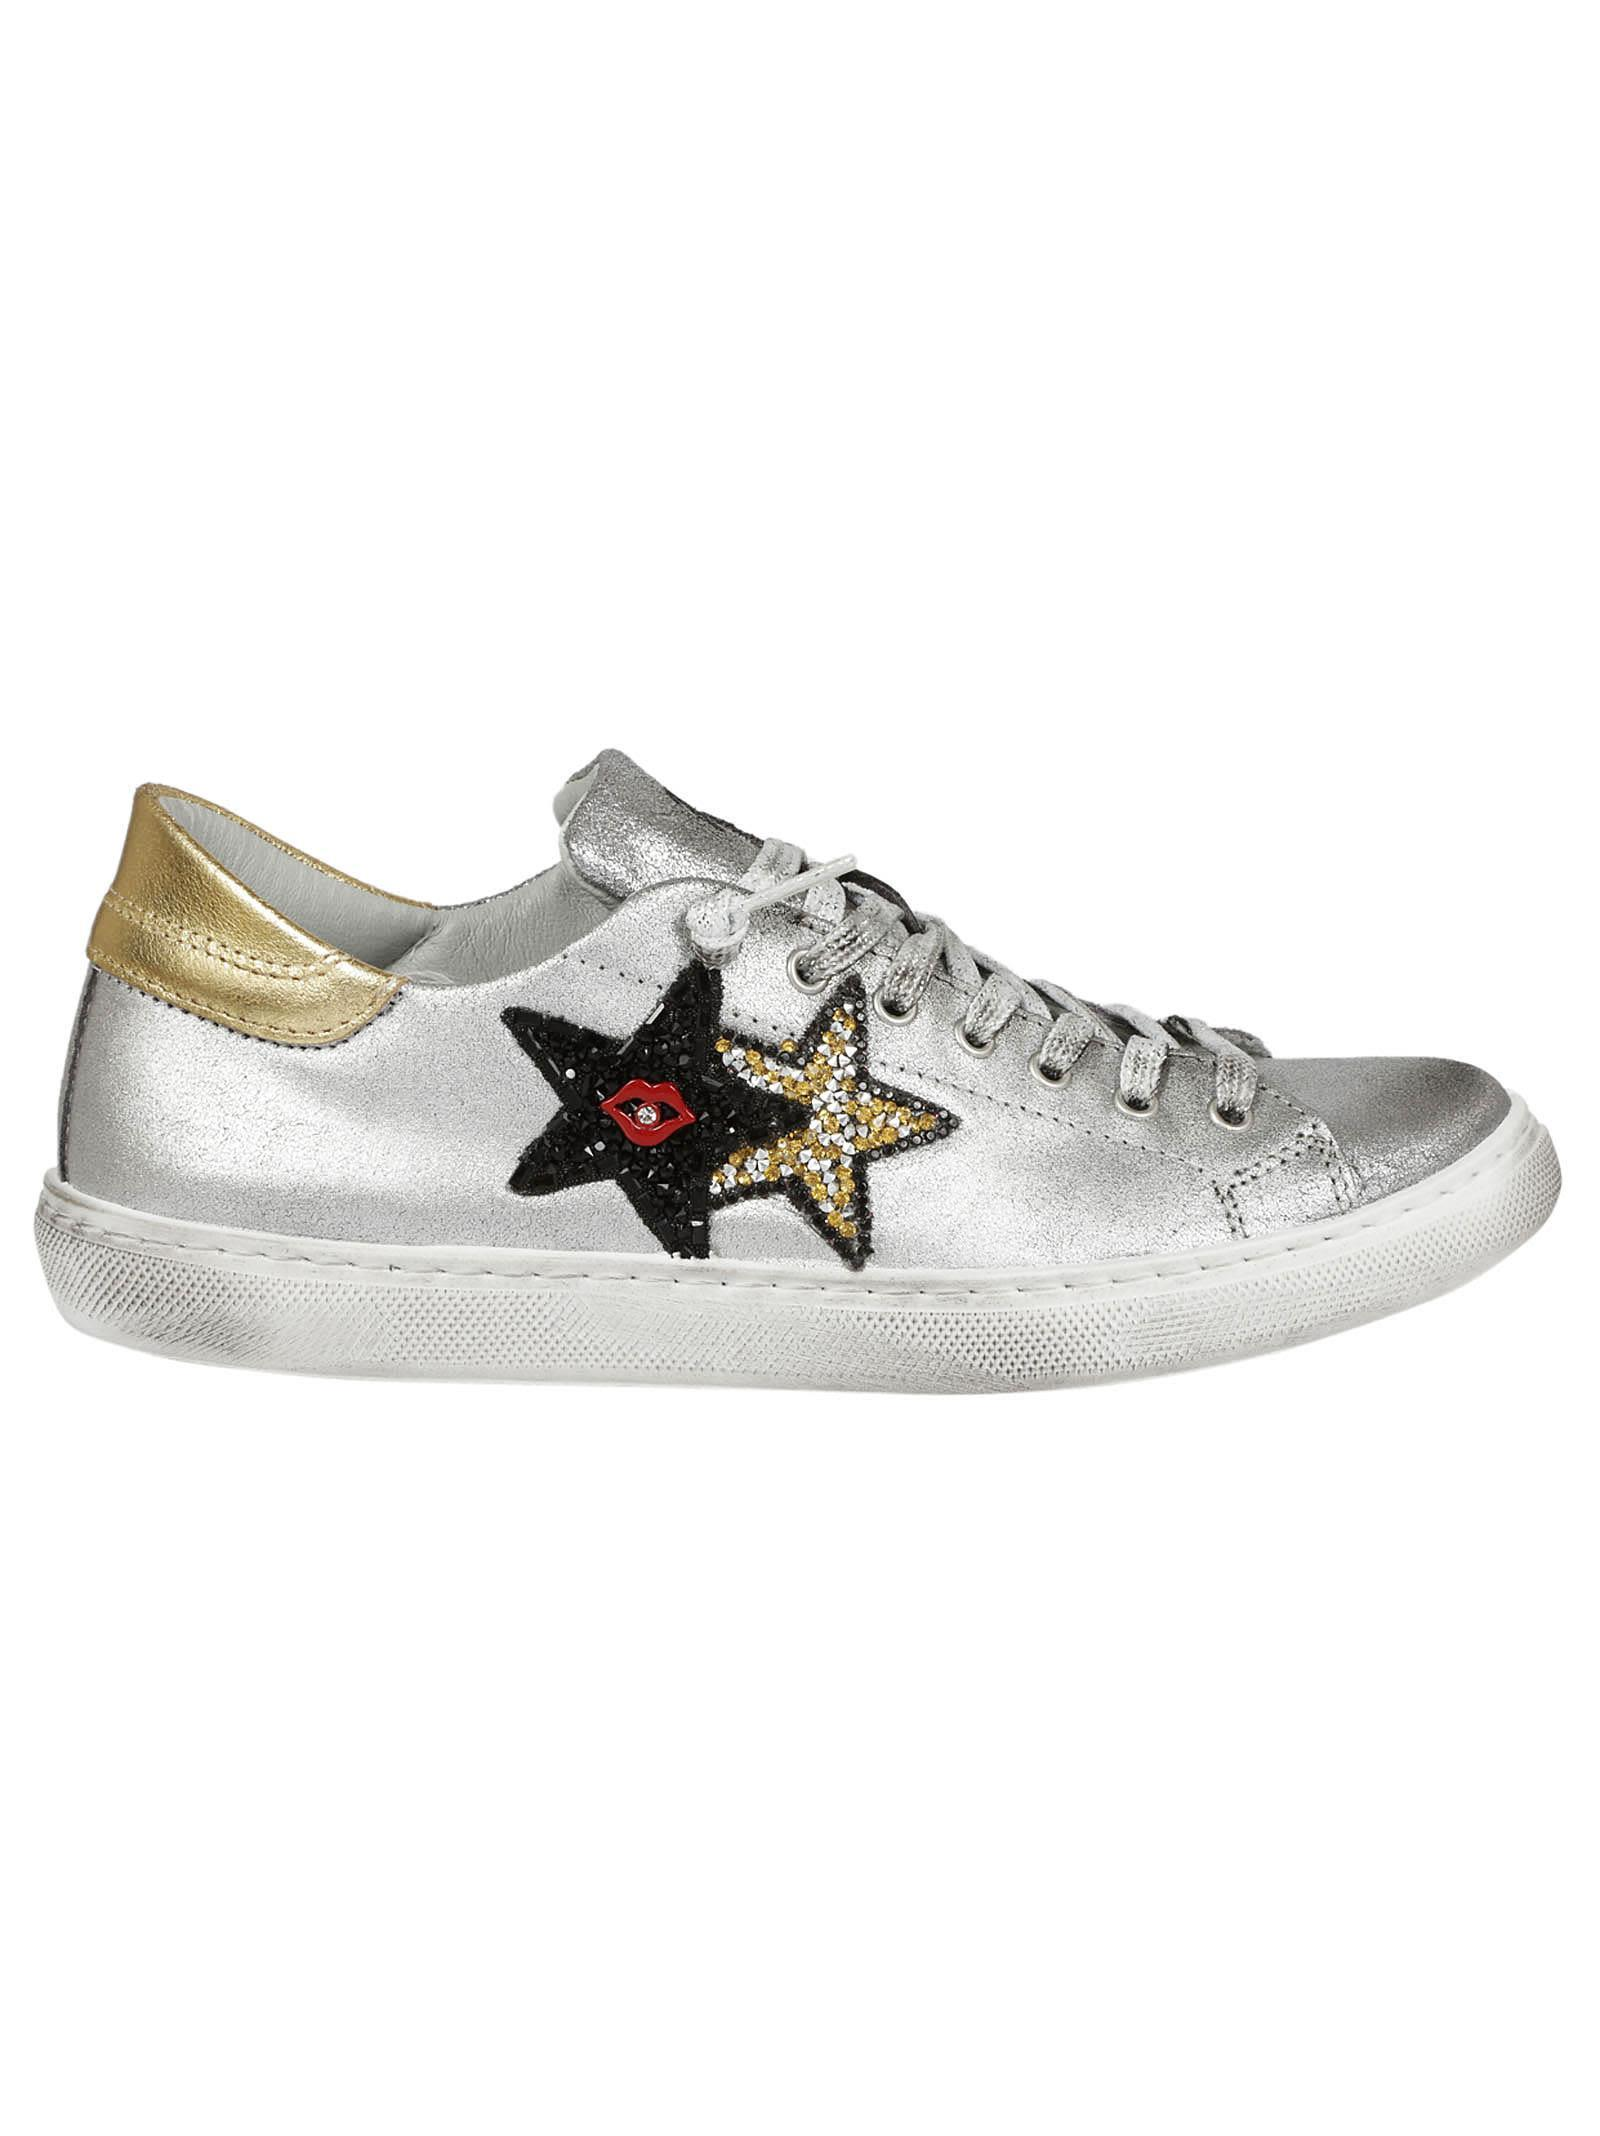 2star Embroidered Sneakers In Silver